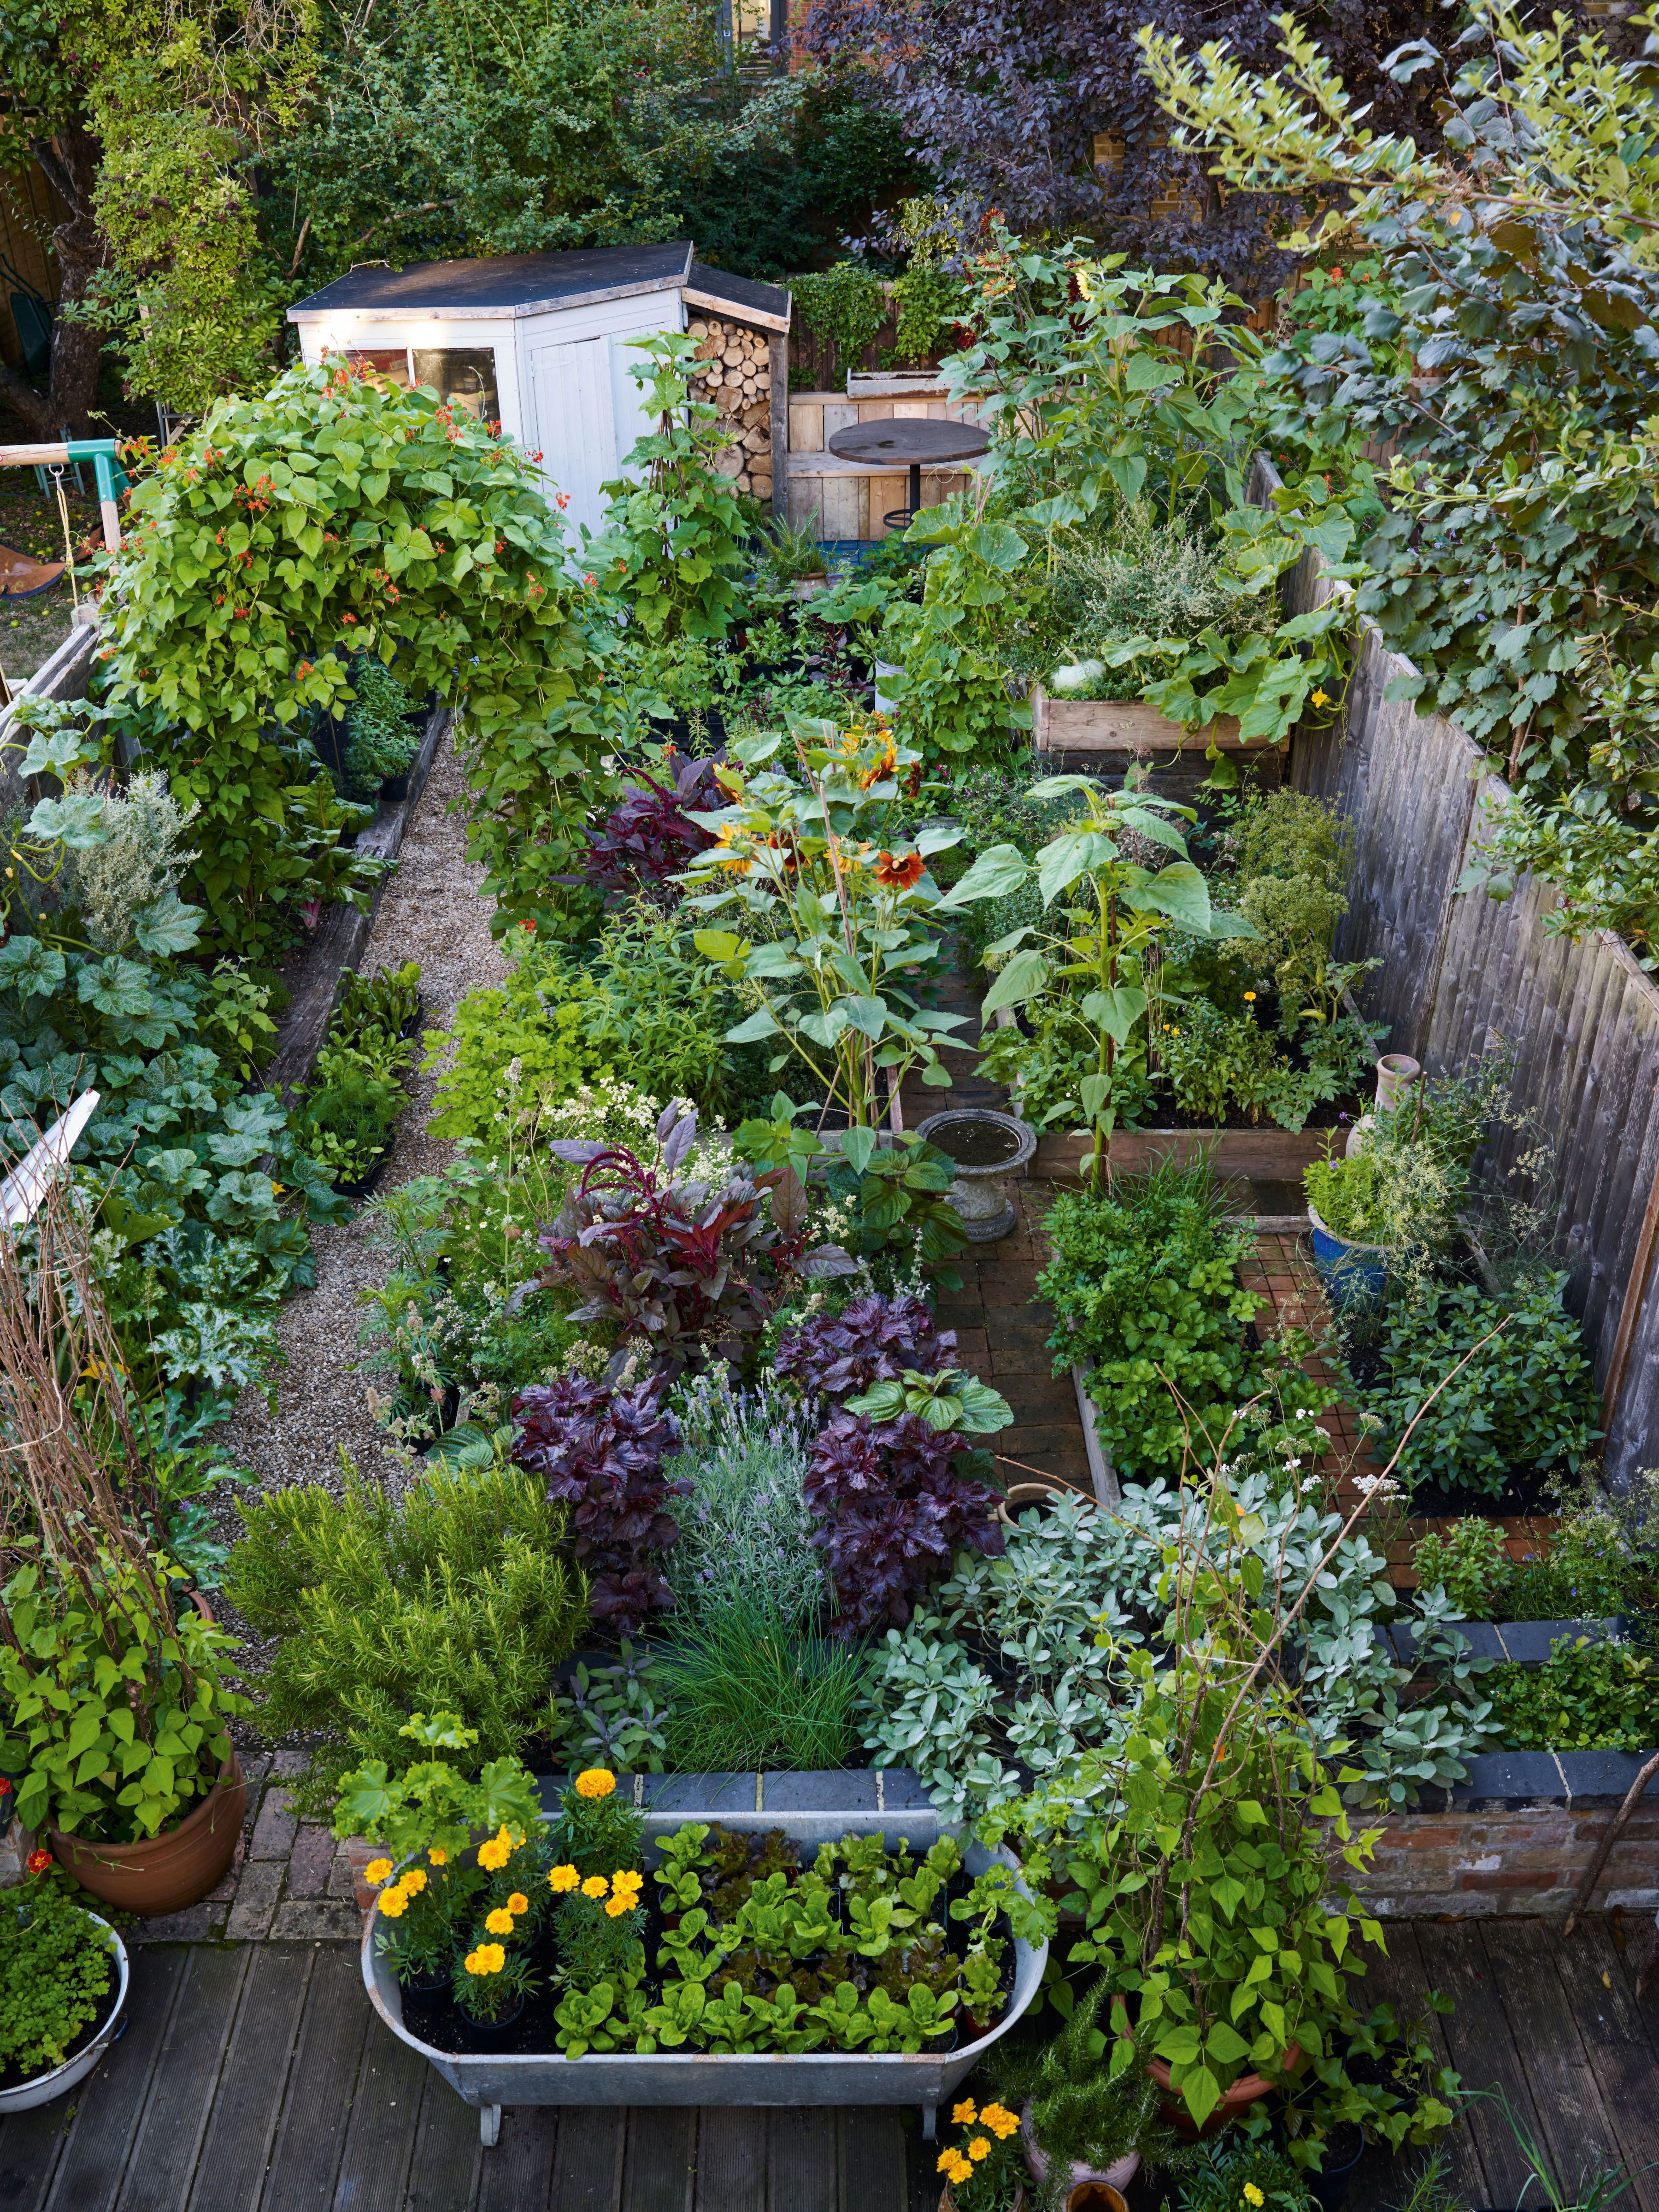 Brilliant Gardening Design Ideas You Need To Know In 202021